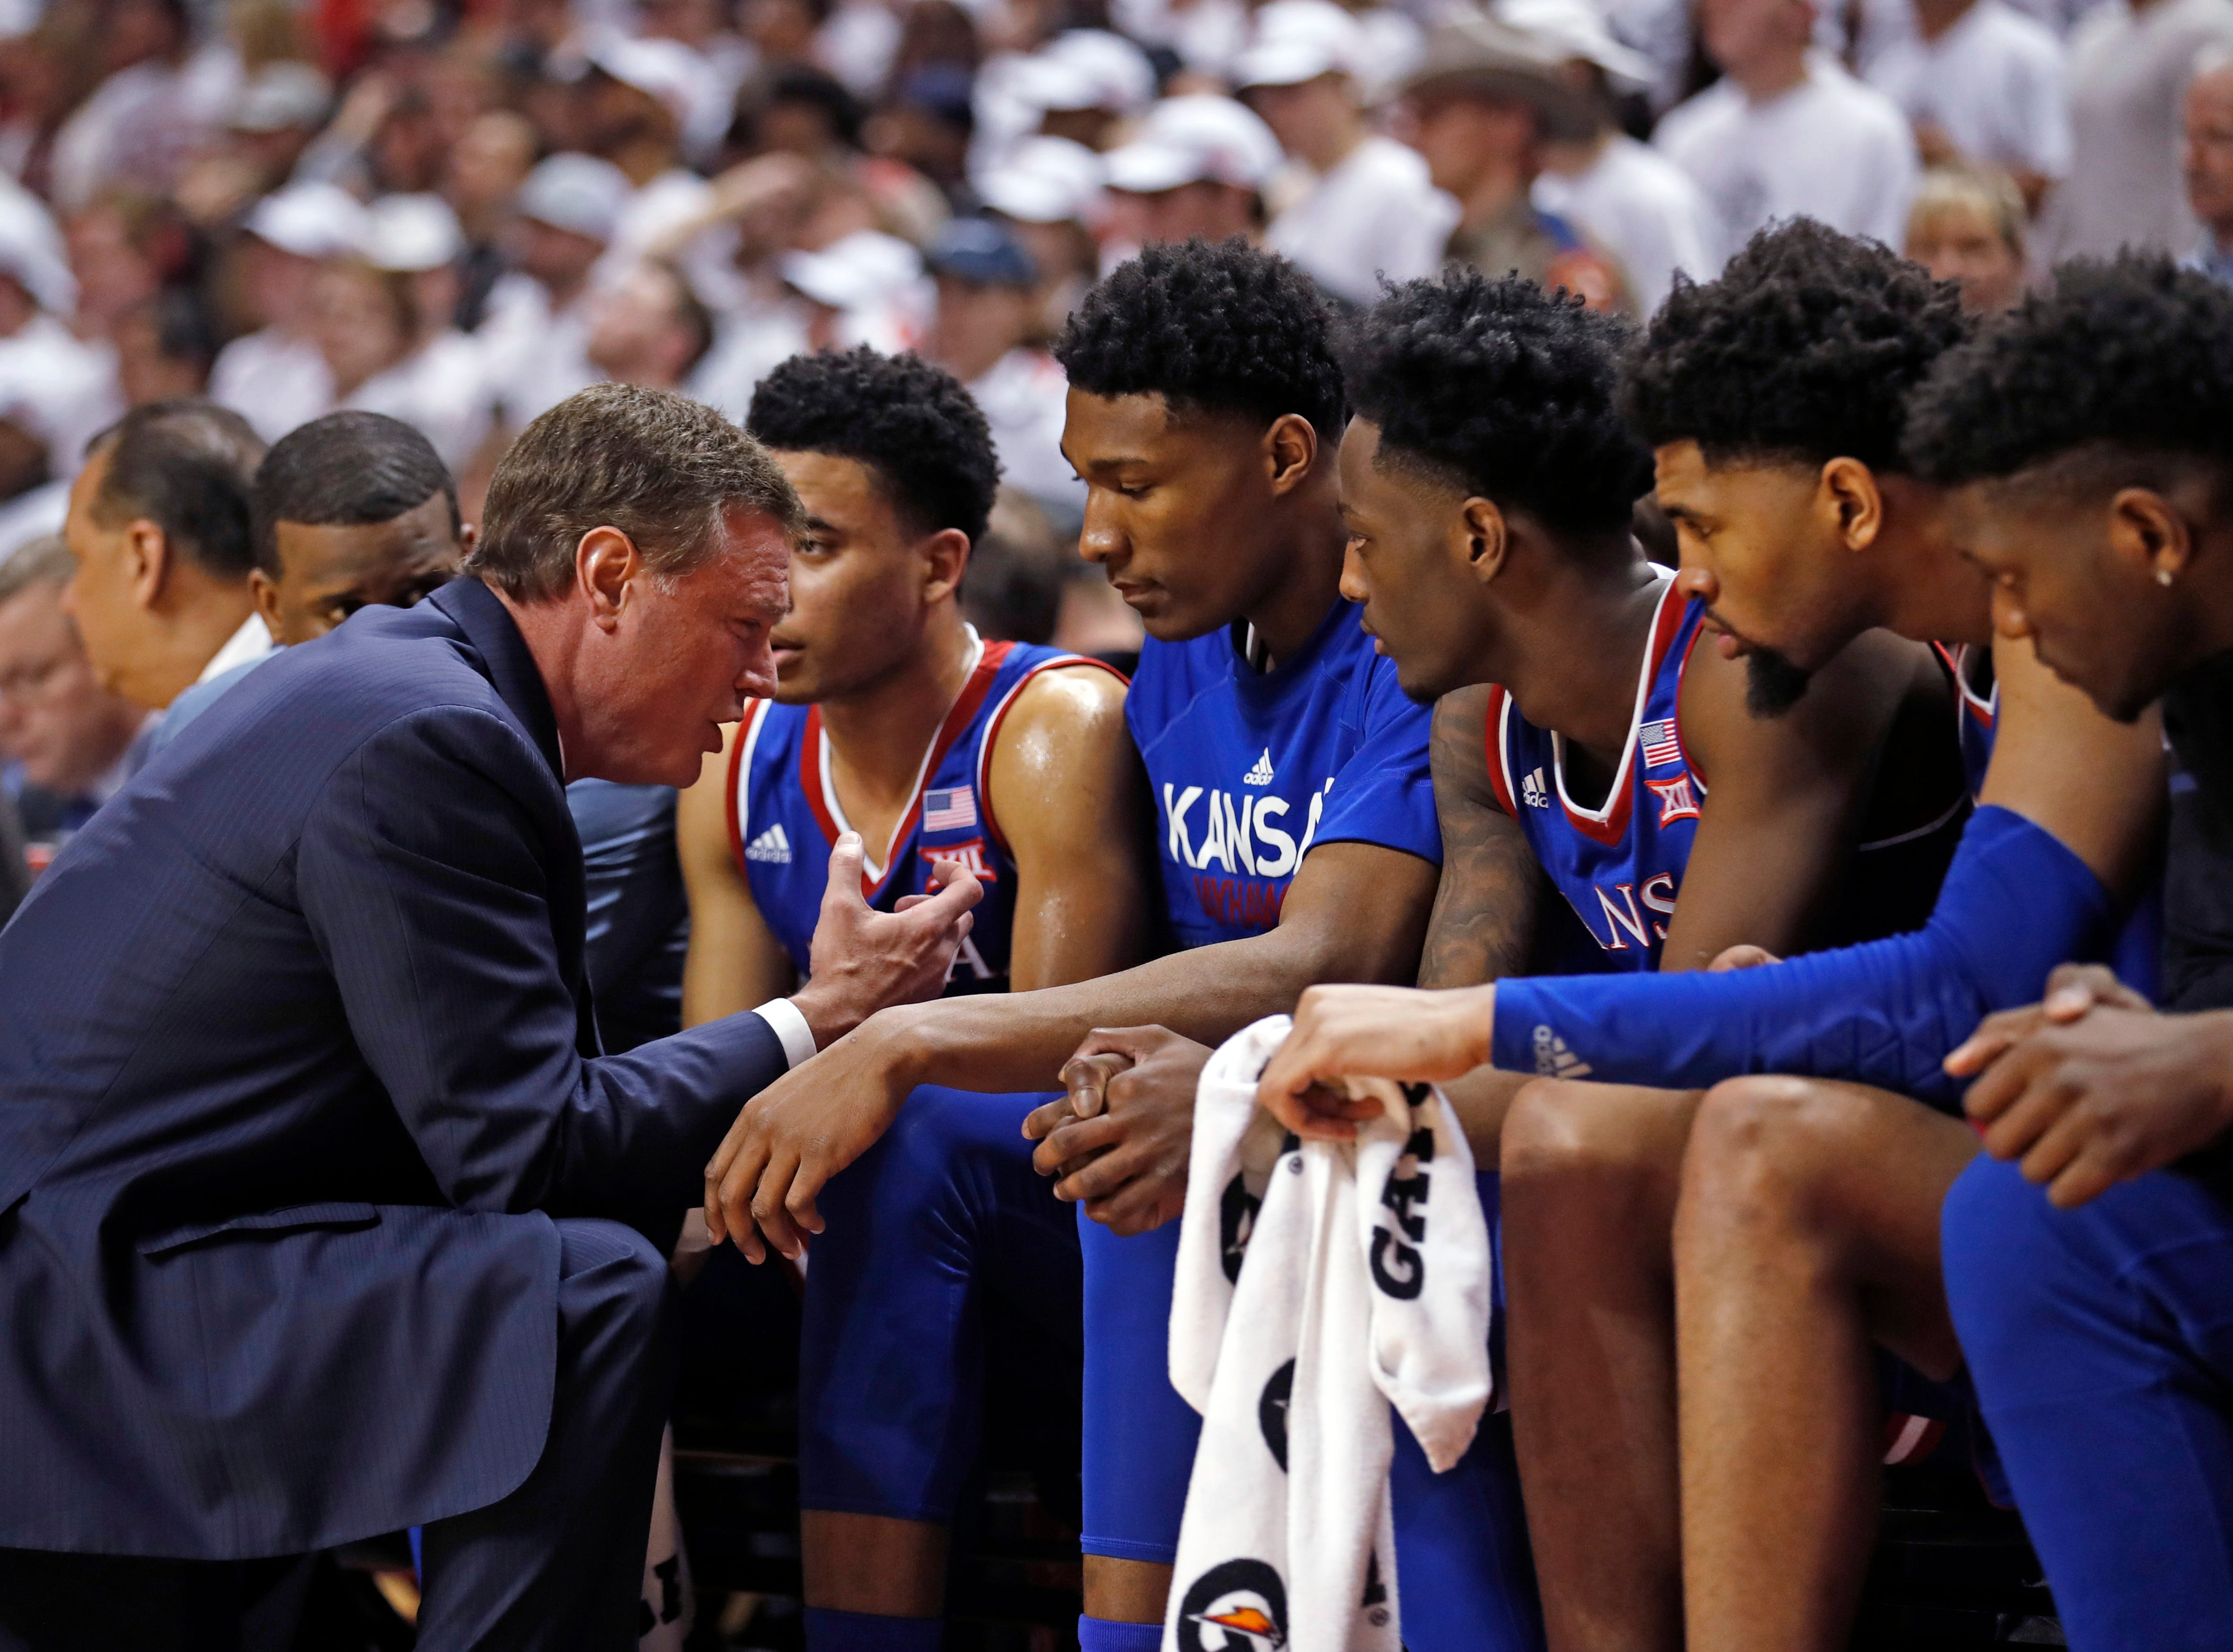 Kansas coach Bill Self talks to his players on the bench during the second half of the team's NCAA college basketball game against Texas Tech, Saturday, Feb. 23, 2019, in Lubbock, Texas. (AP Photo/Brad Tollefson)